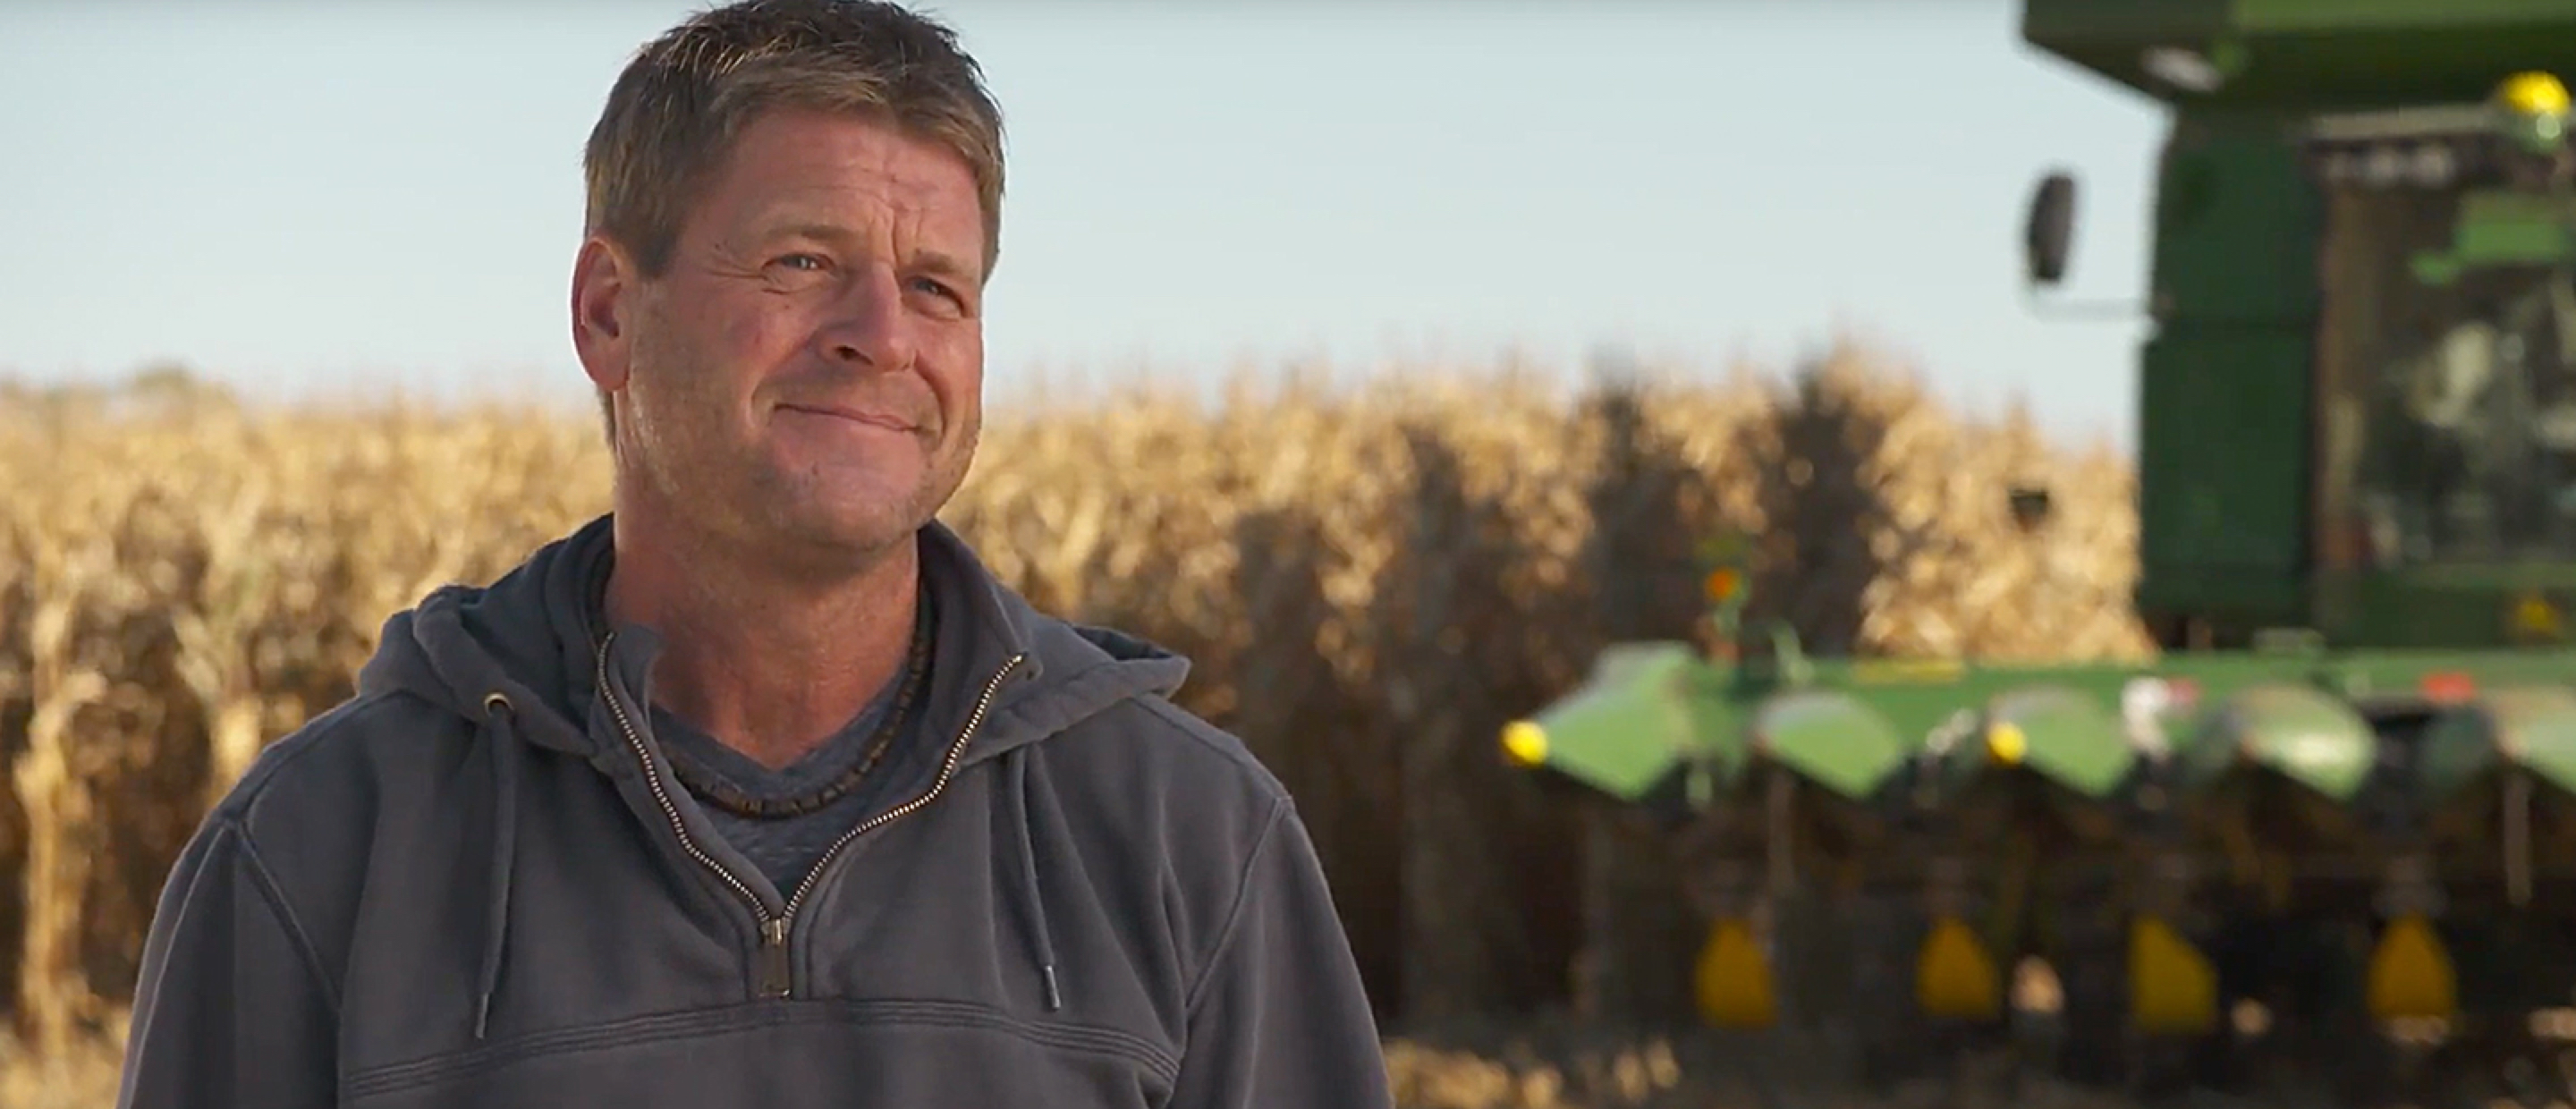 Netafim Drip Irrigation for Corn in USA: Dan Luepkes's story